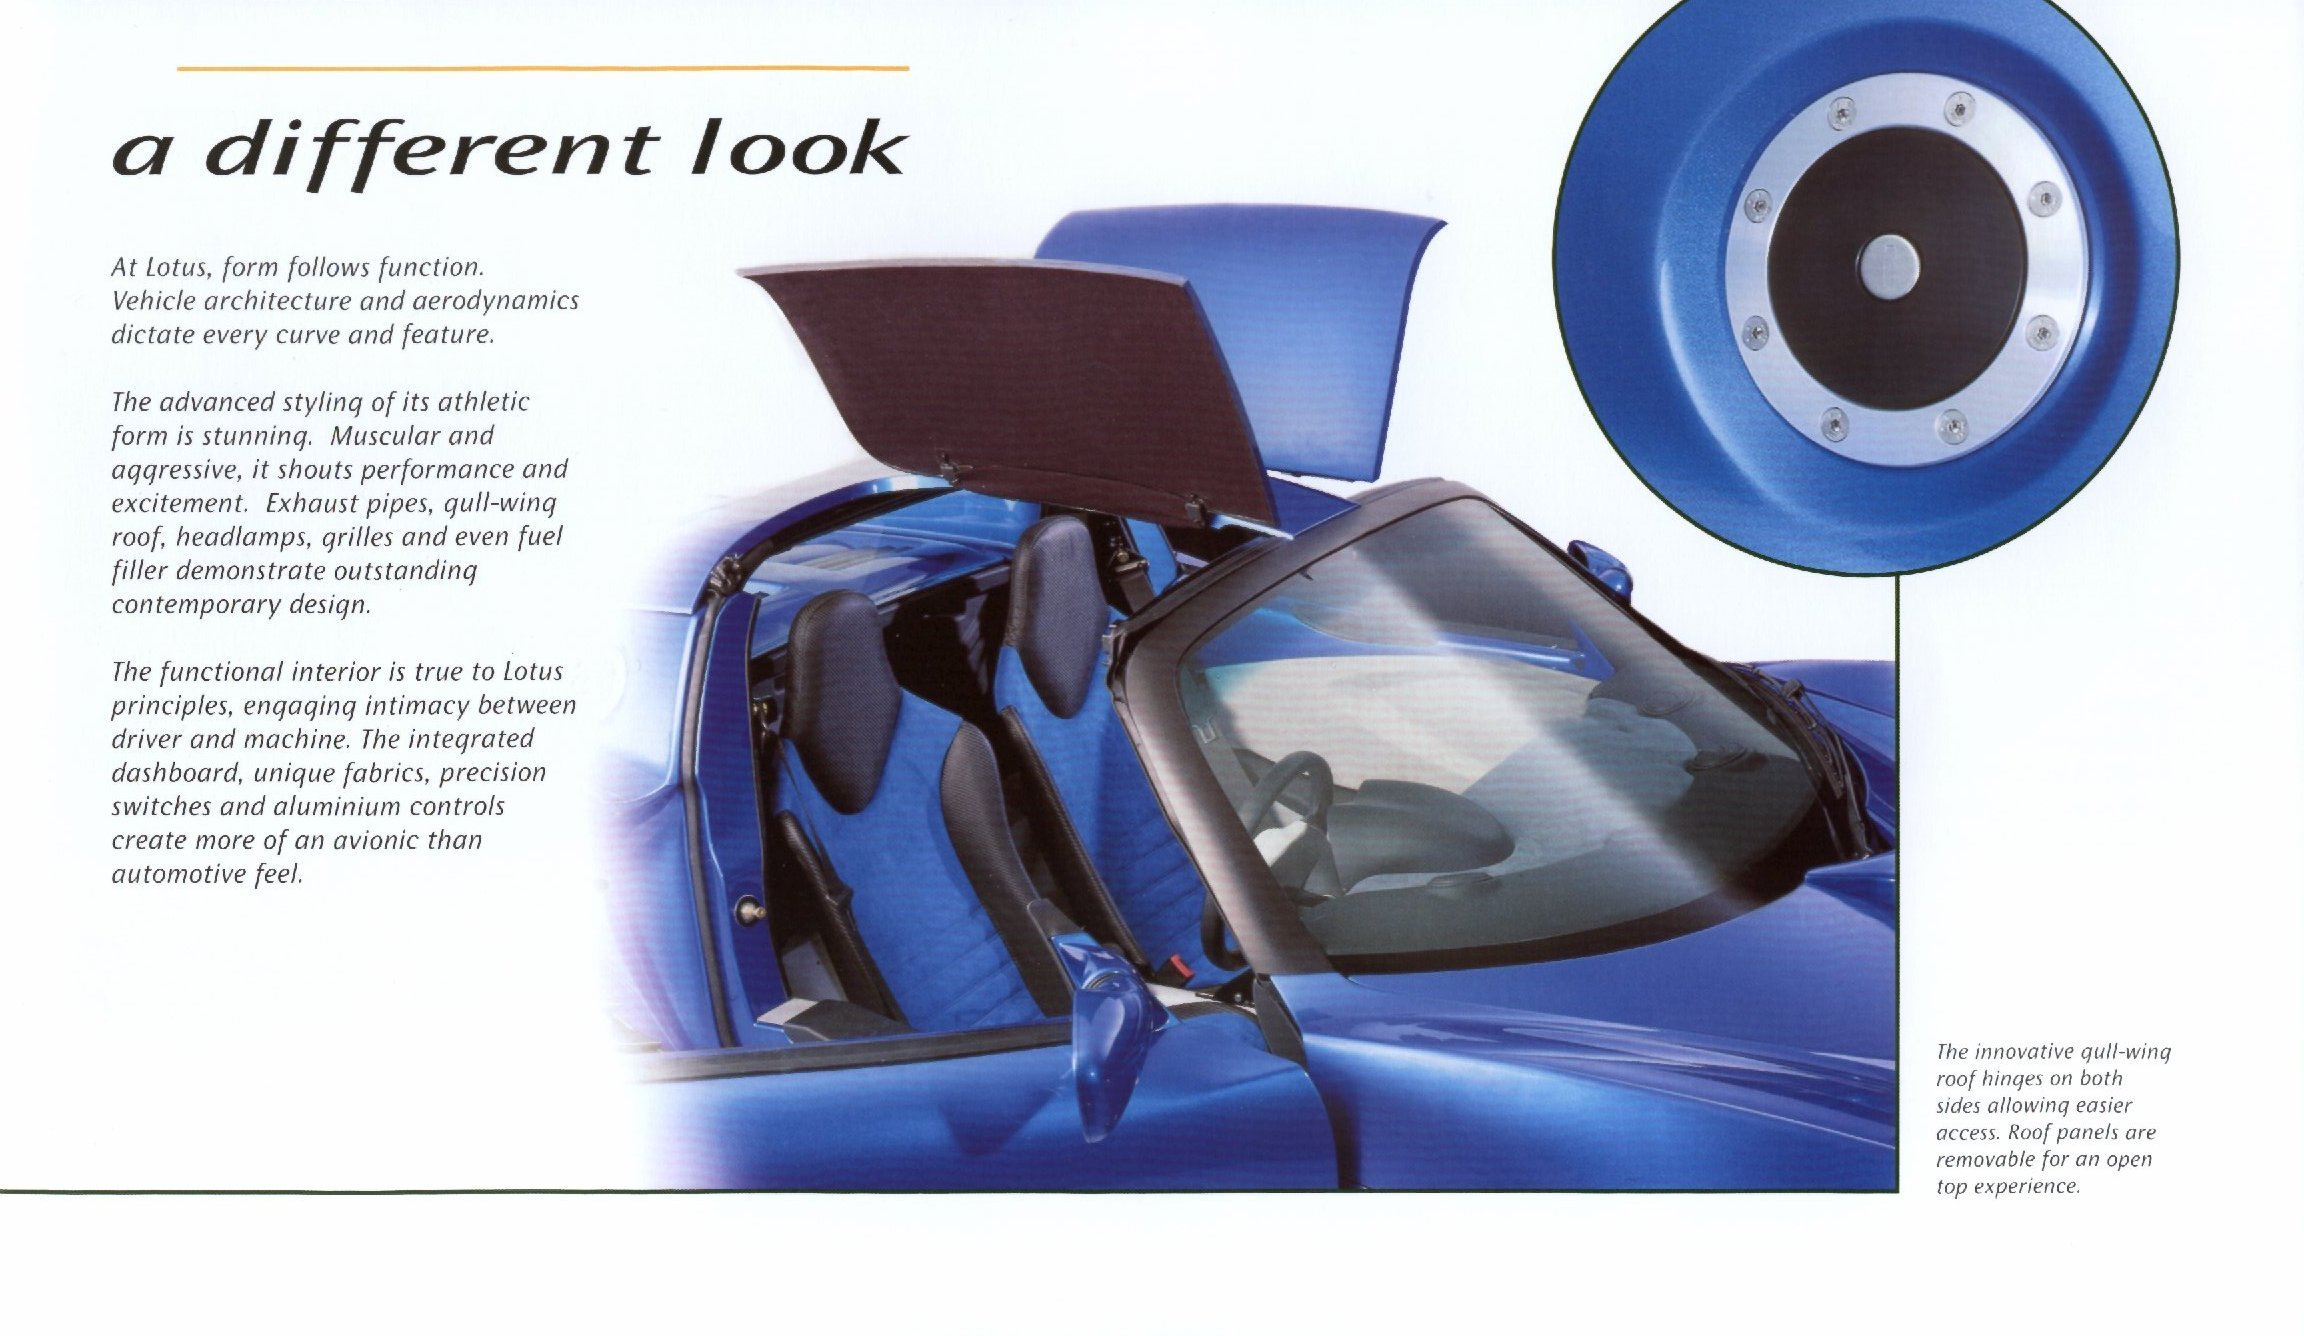 The Lotus Elise S2 Details